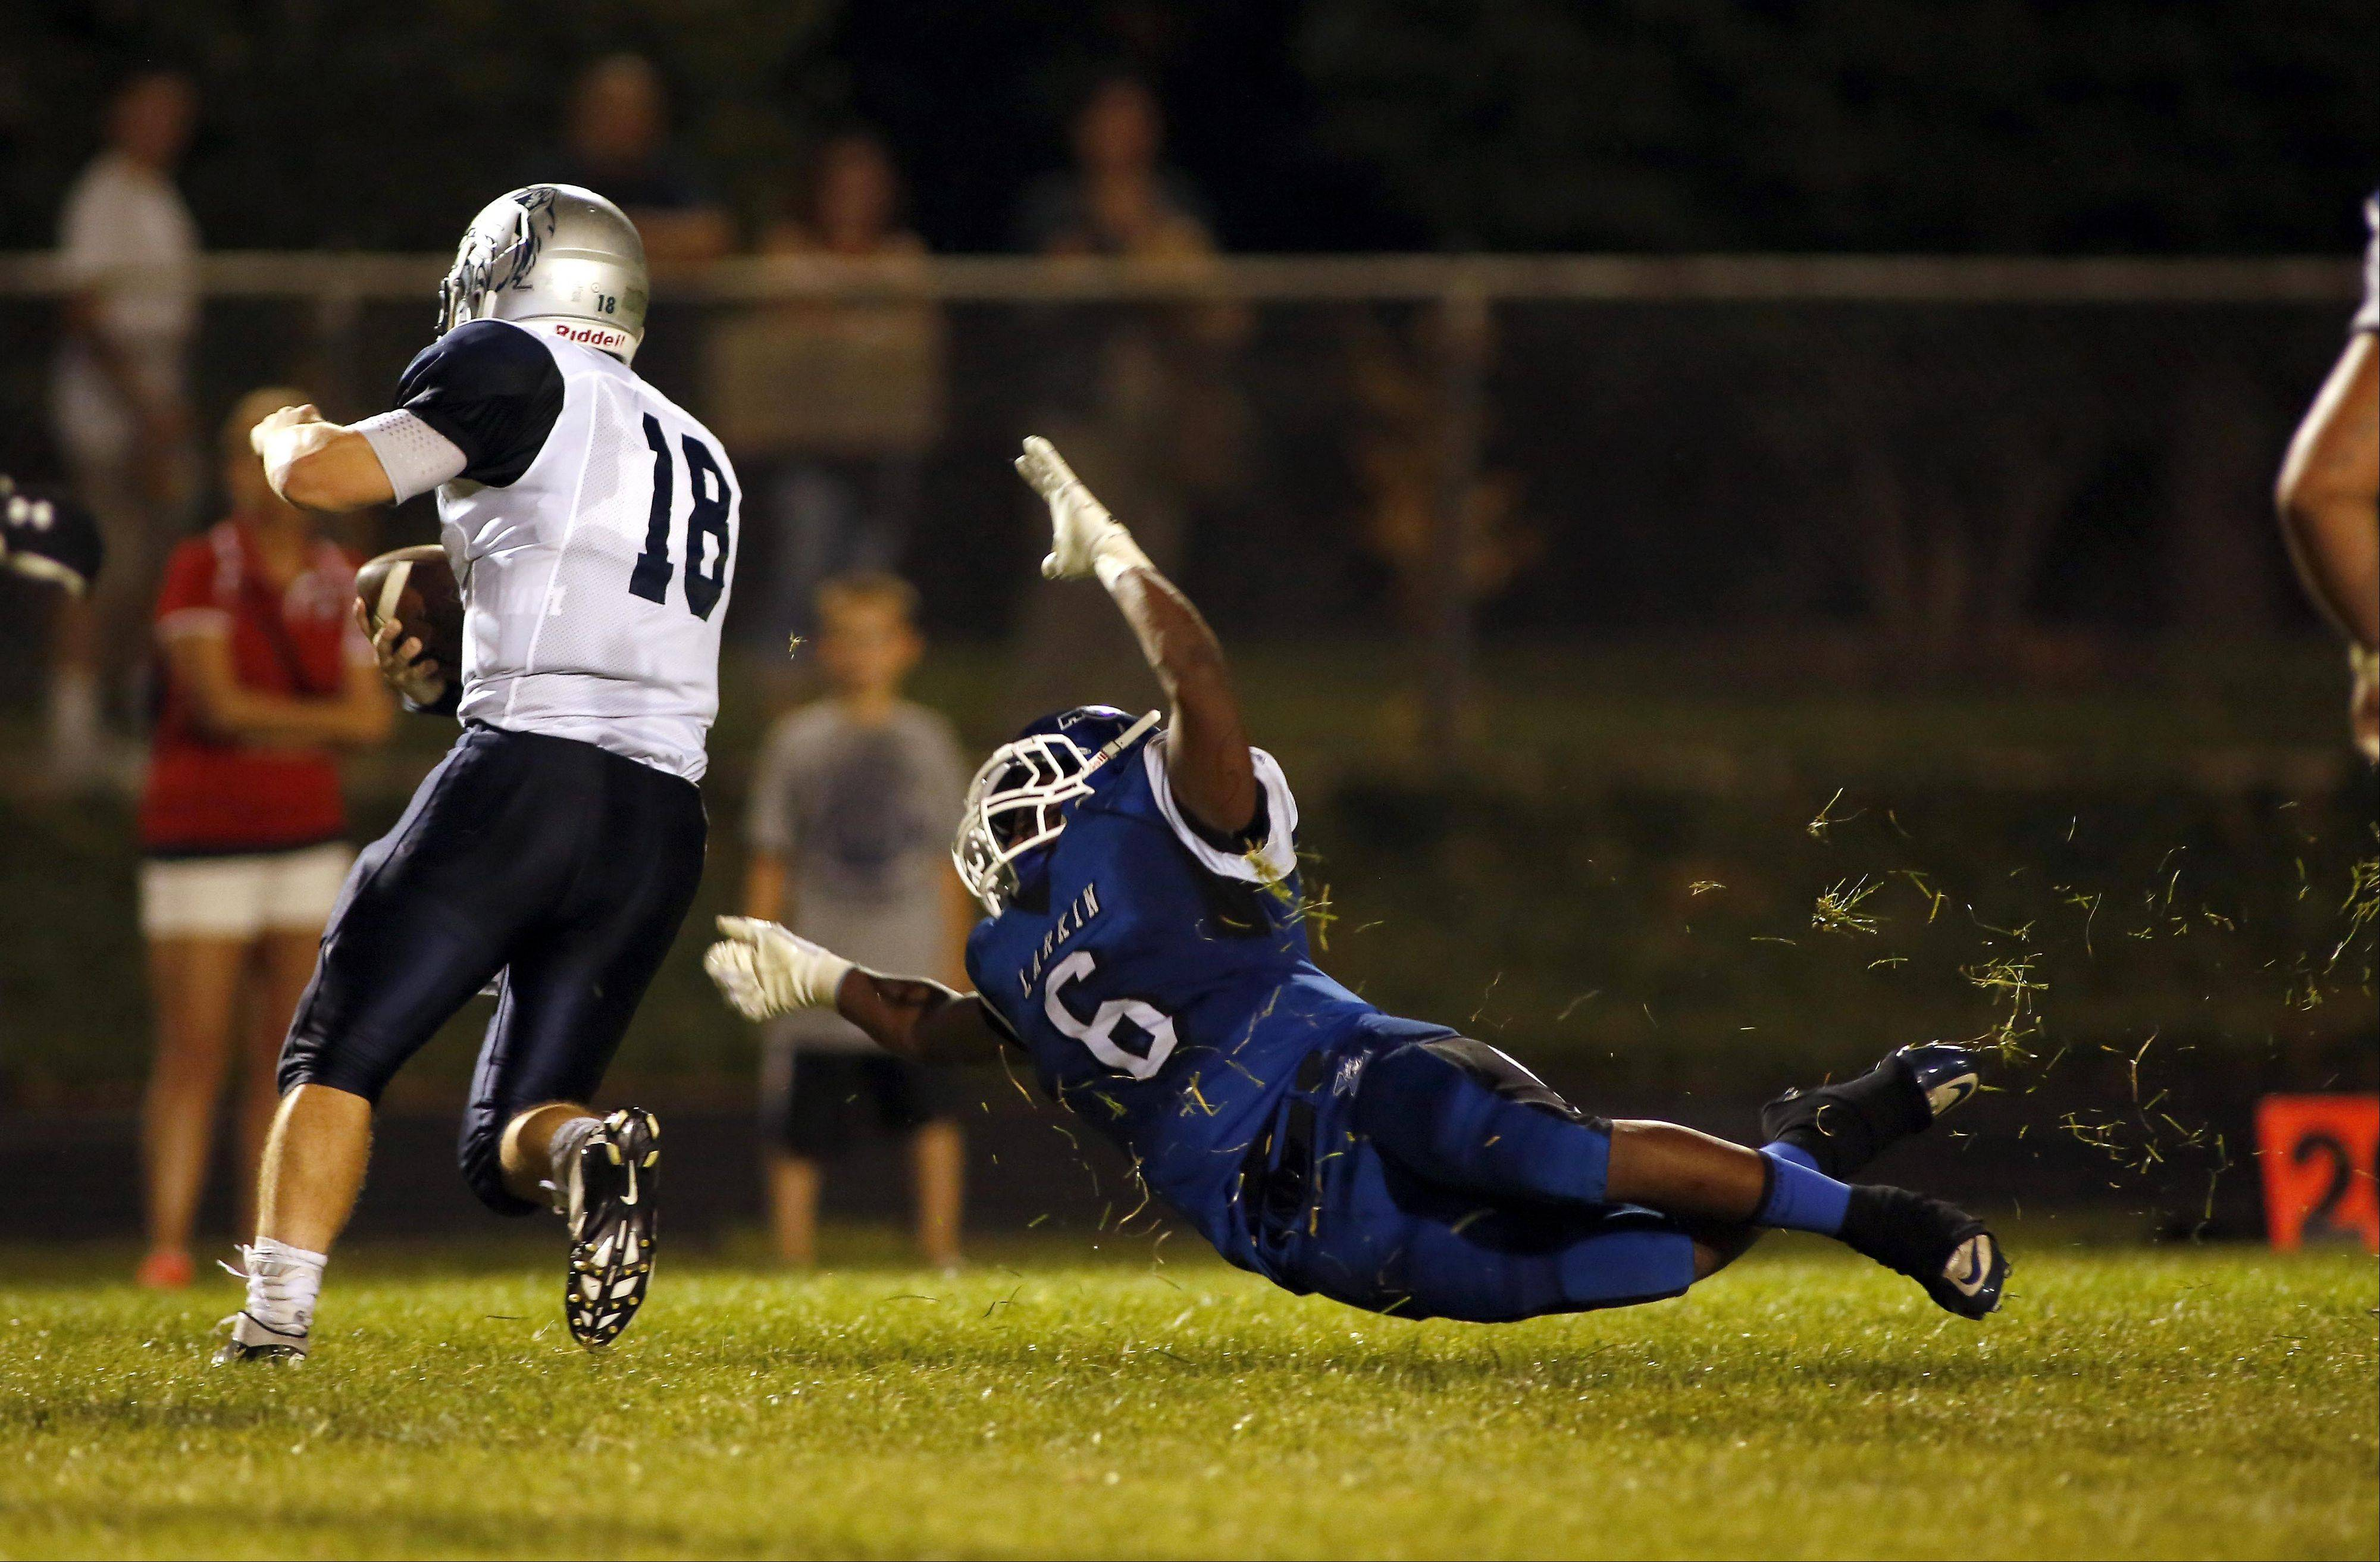 Larkin's Jeff Pruitt tries to bring down West Chicago's Jordan Lelito.